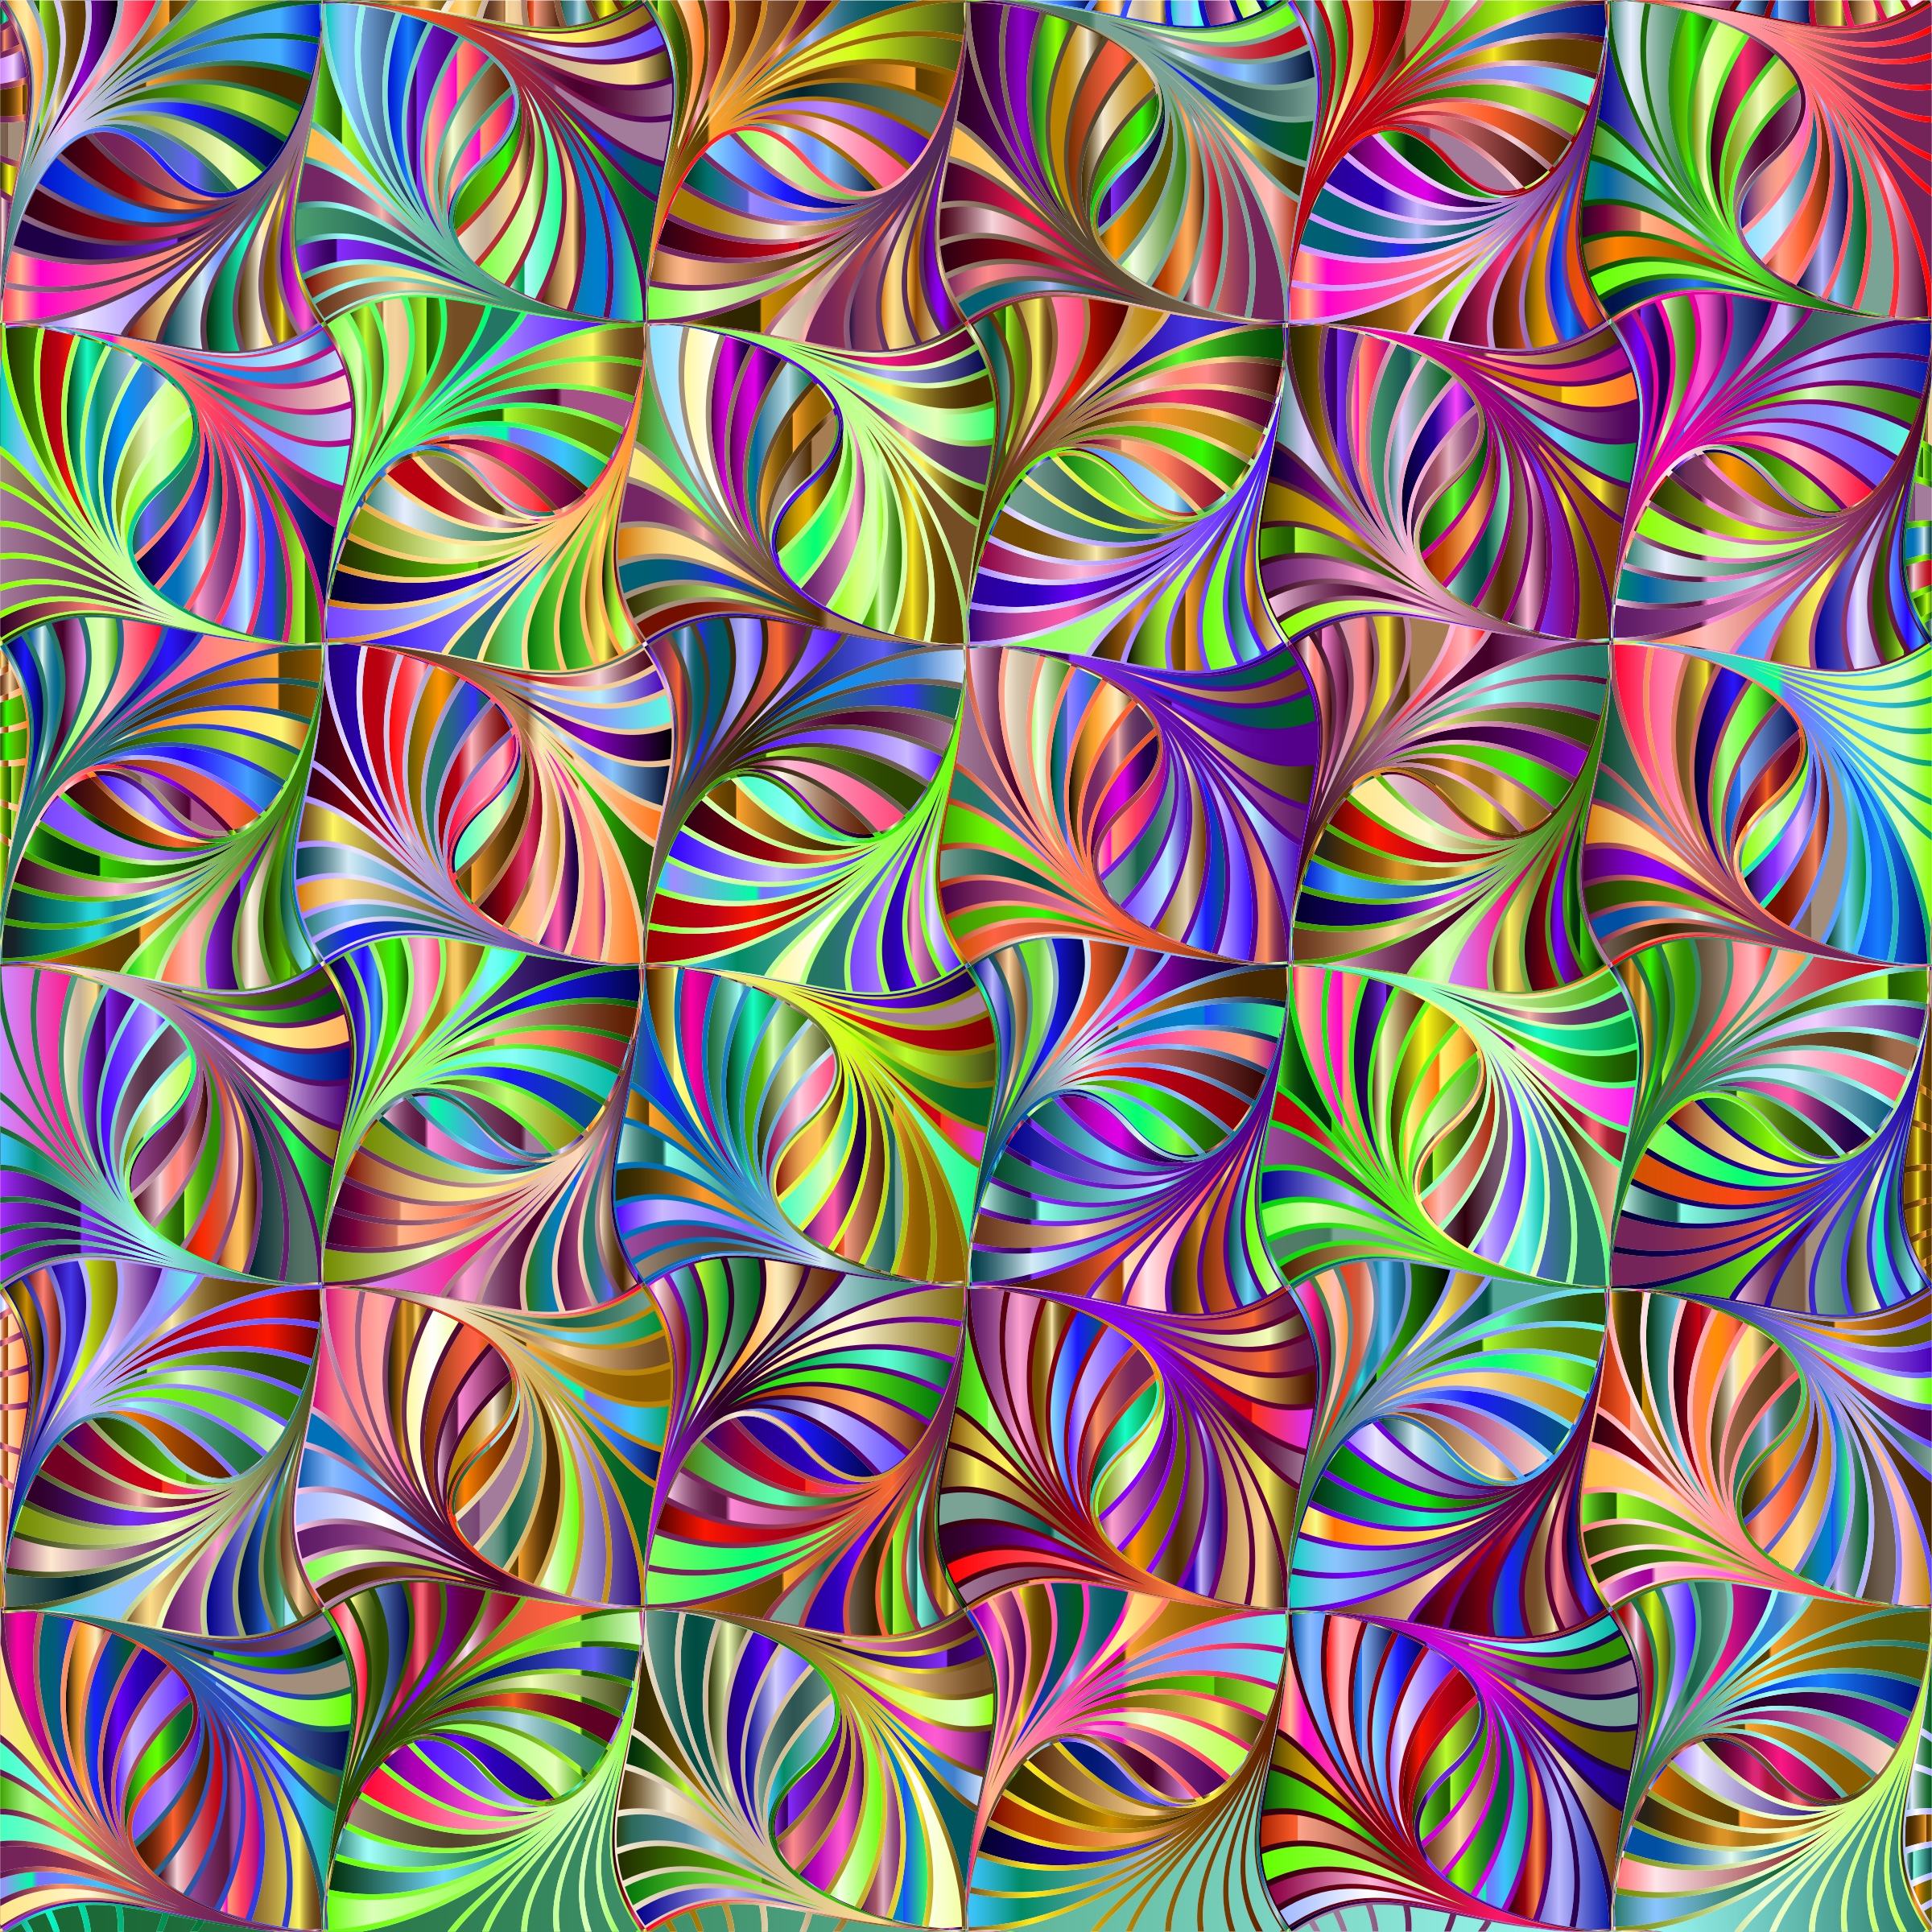 Prismatic Abstract Geometric Background 3 by GDJ